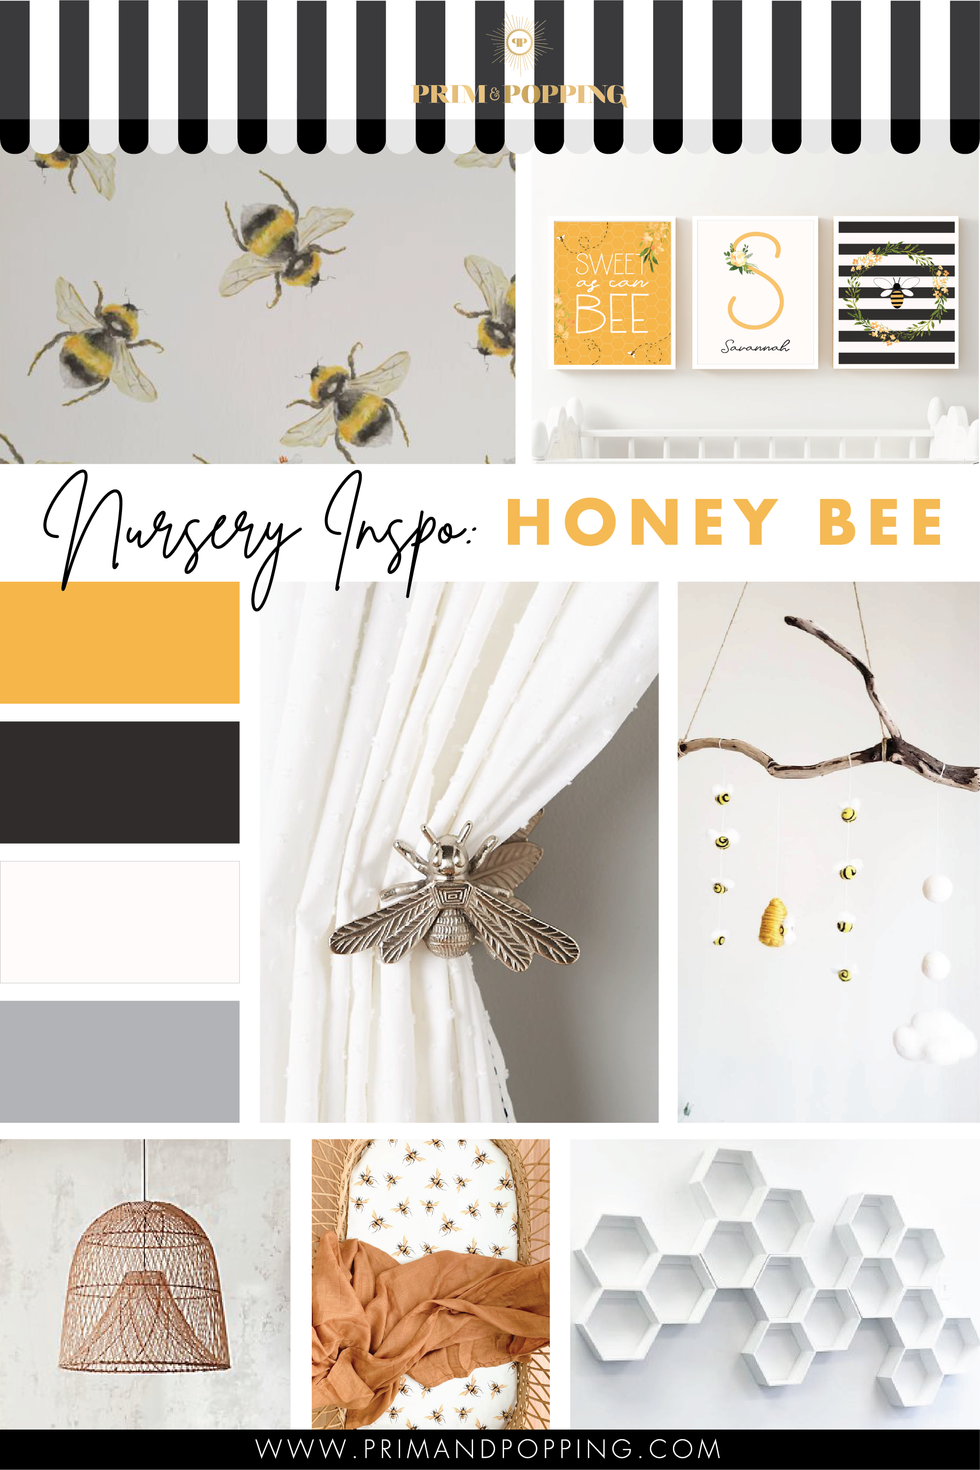 Nursery Inspiration: Honey Bee